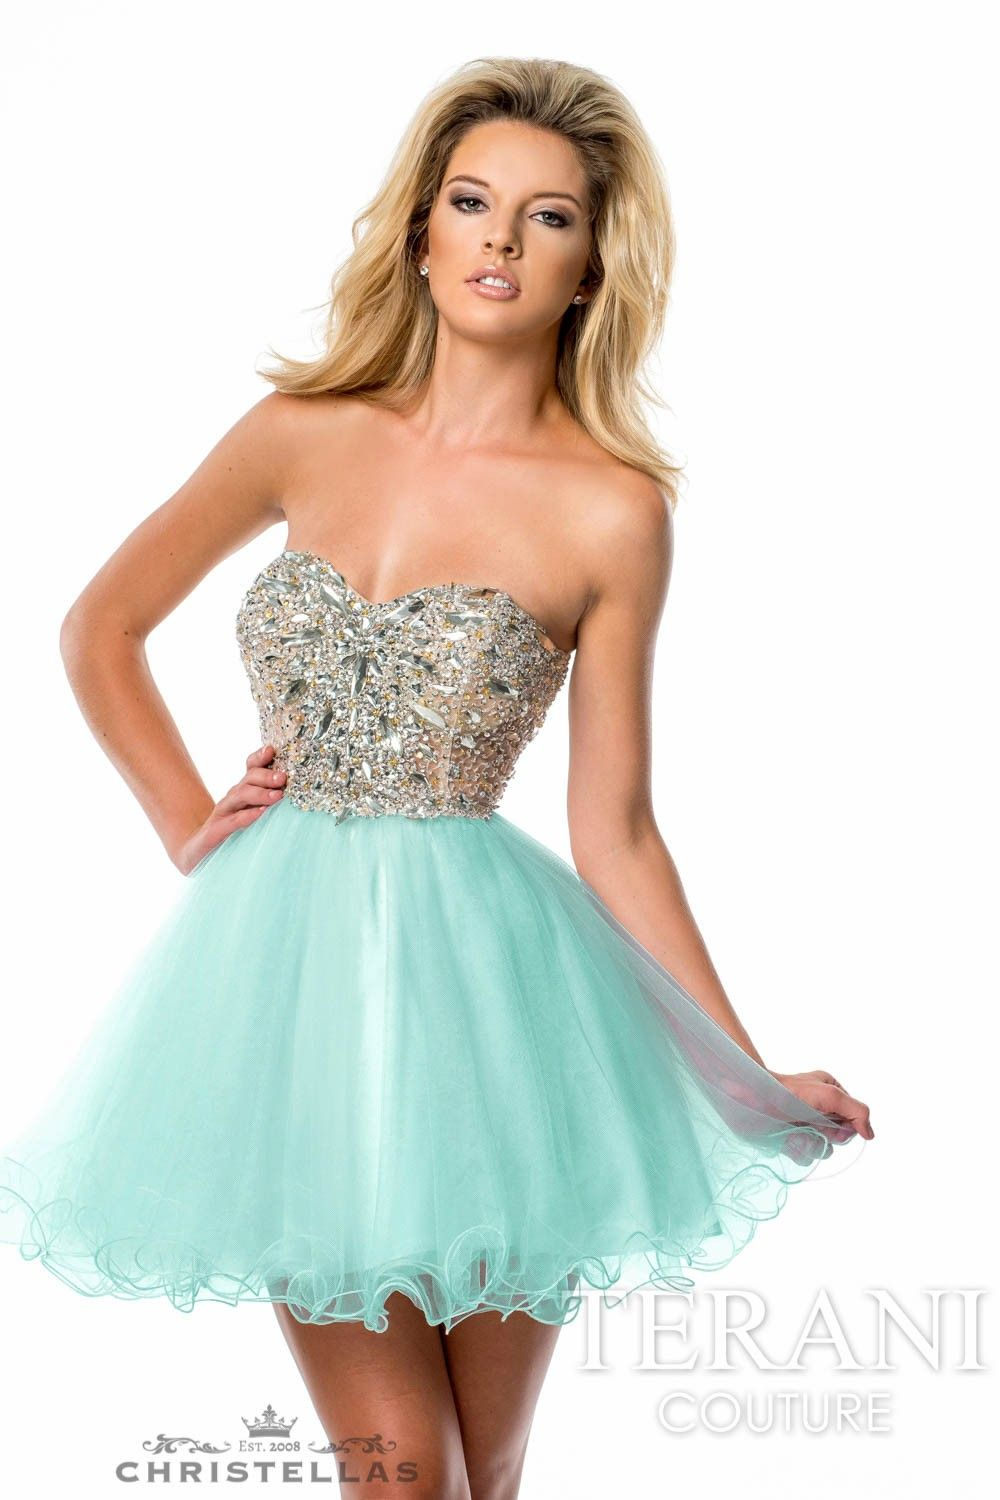 Sparkling Princess Party Dress provides a darling dress-up look ...